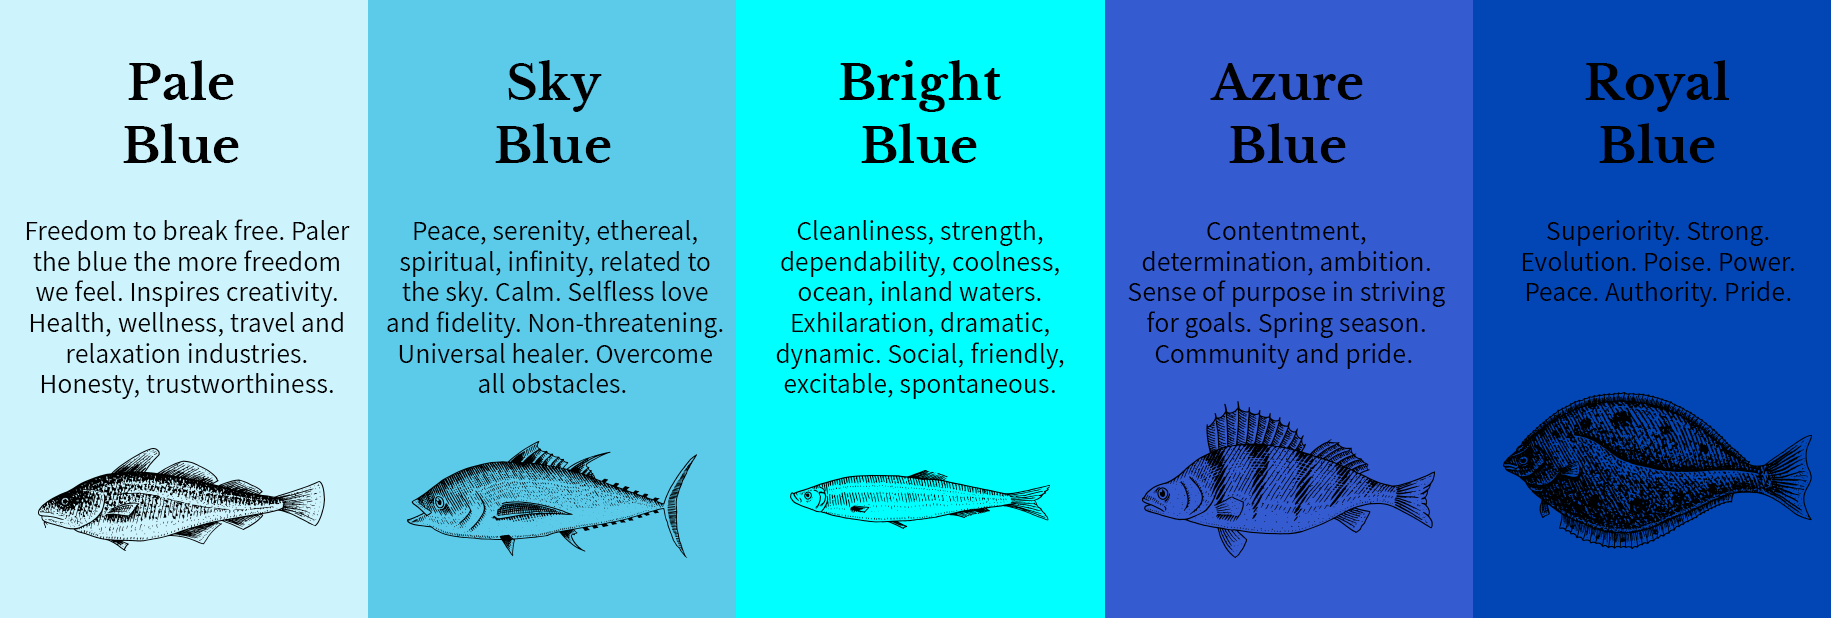 Blue_Infographic1-5.png